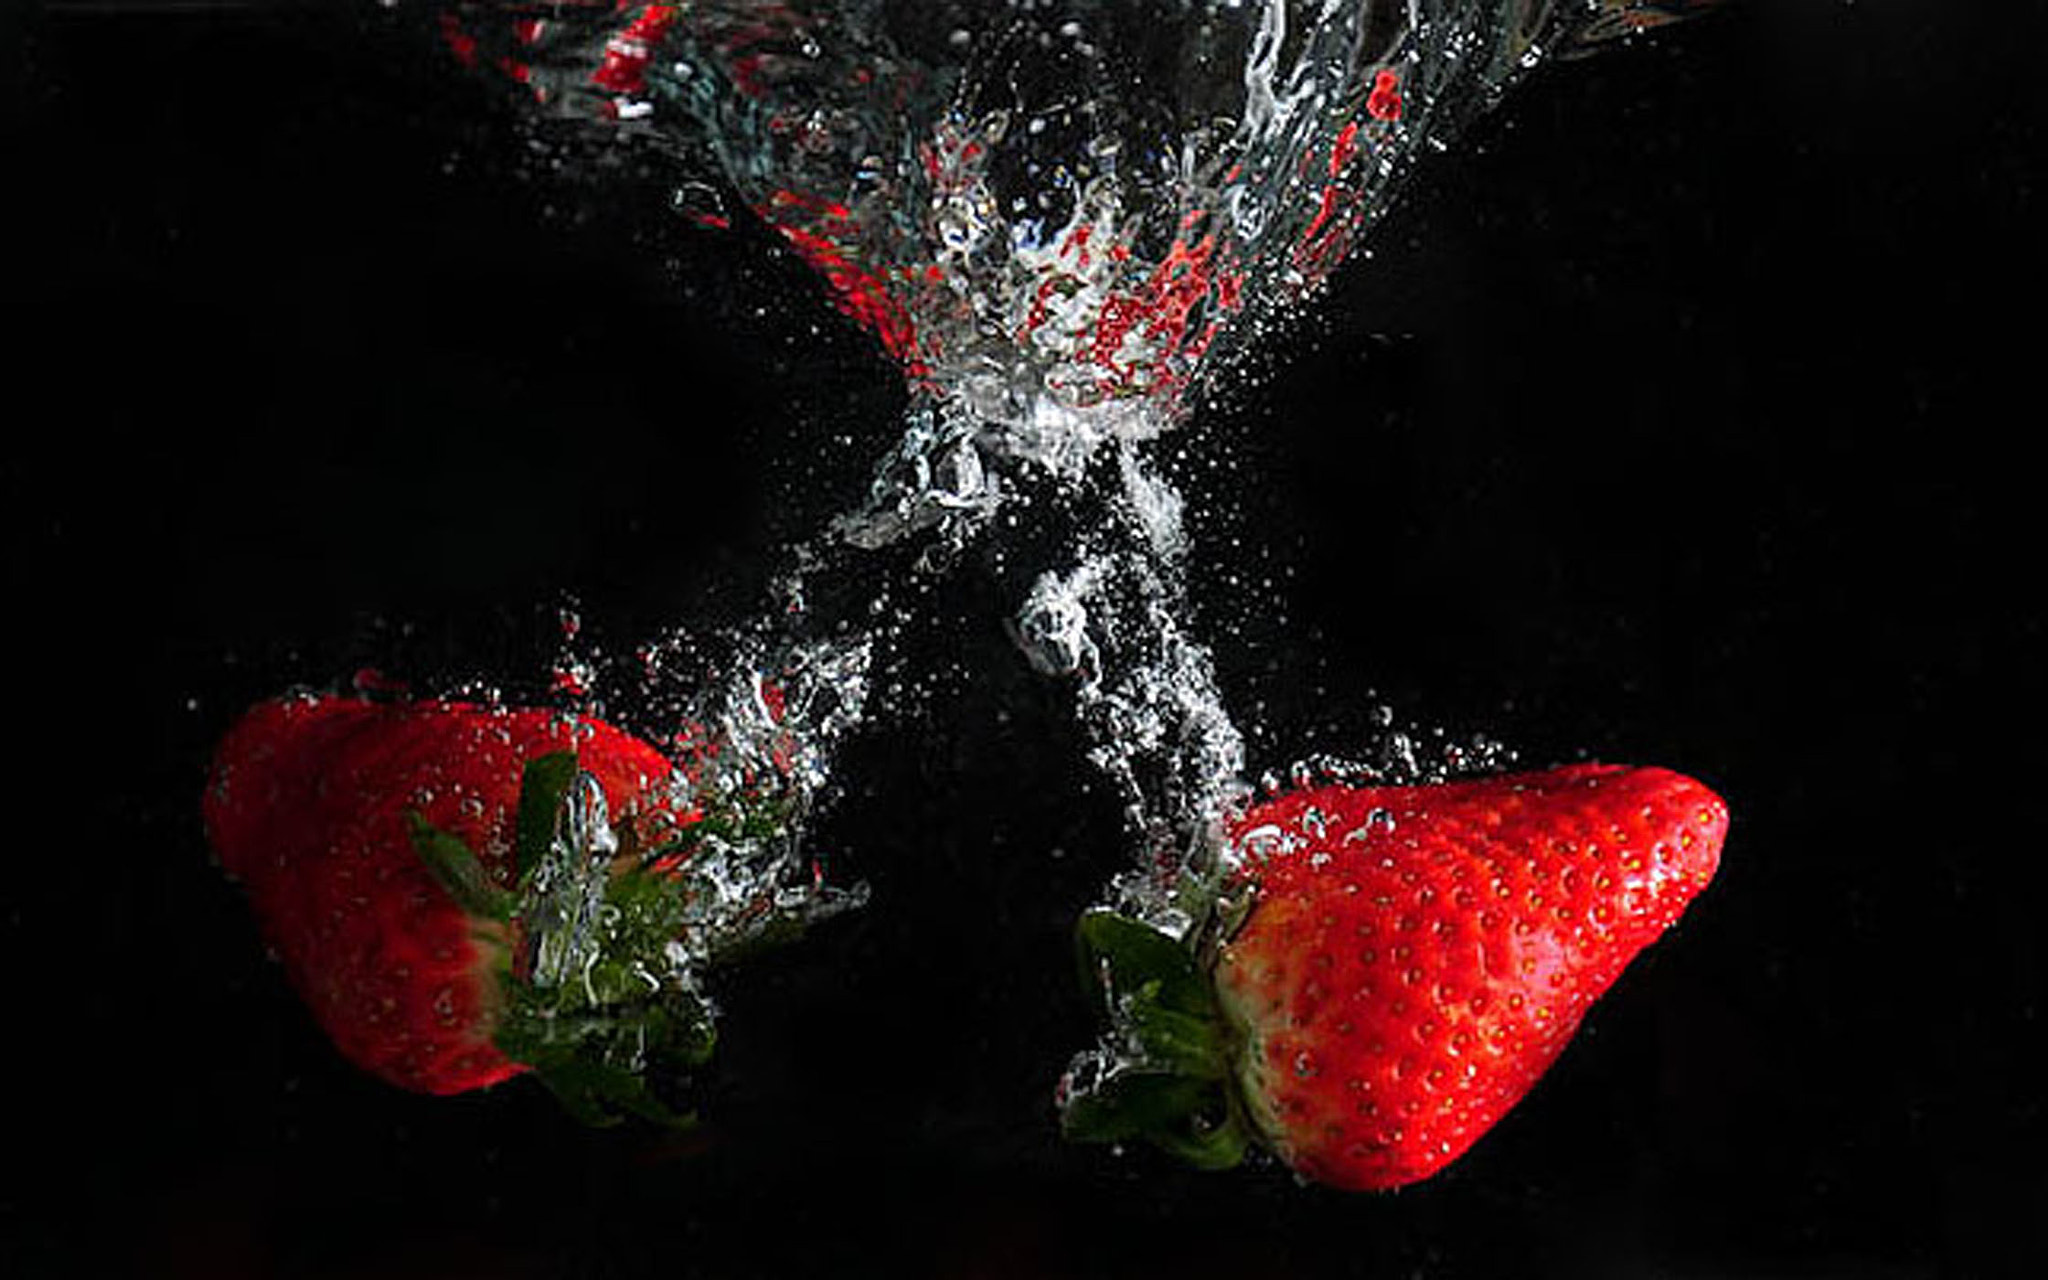 Photograph Strawberry Splash by Elaine Hughes on 500px